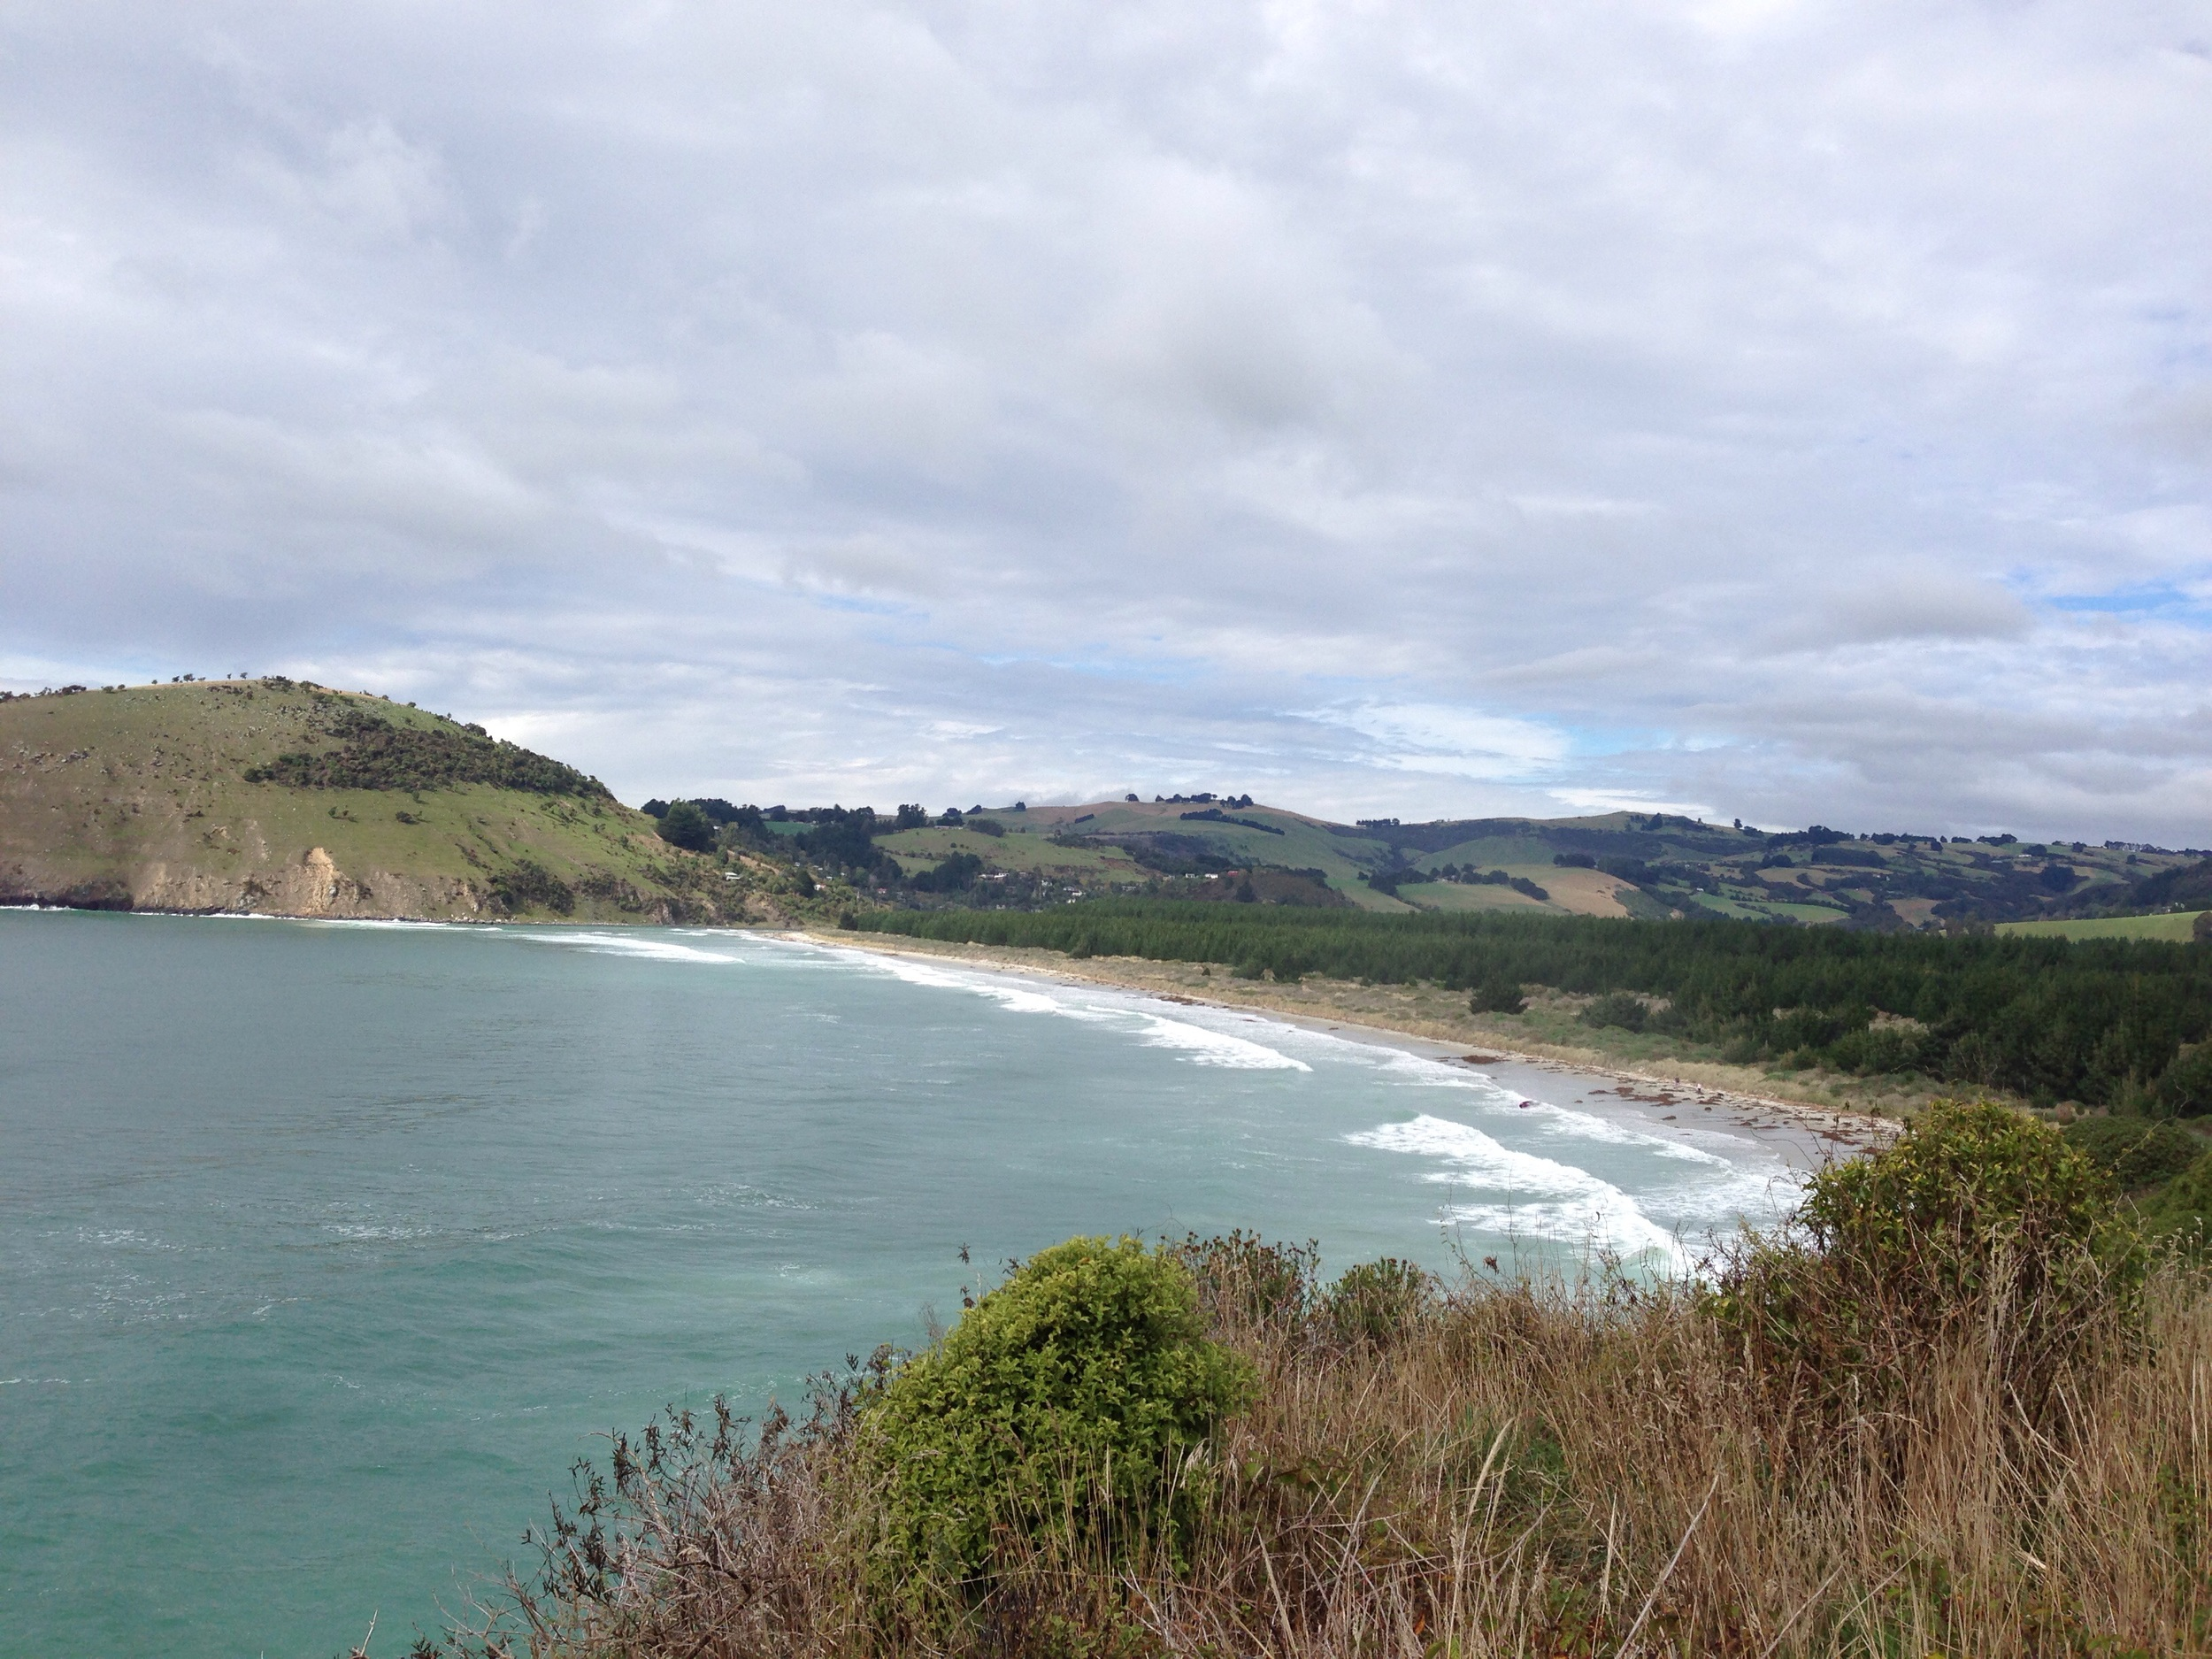 Purakaunui beach and  Purakaunui hamlet .